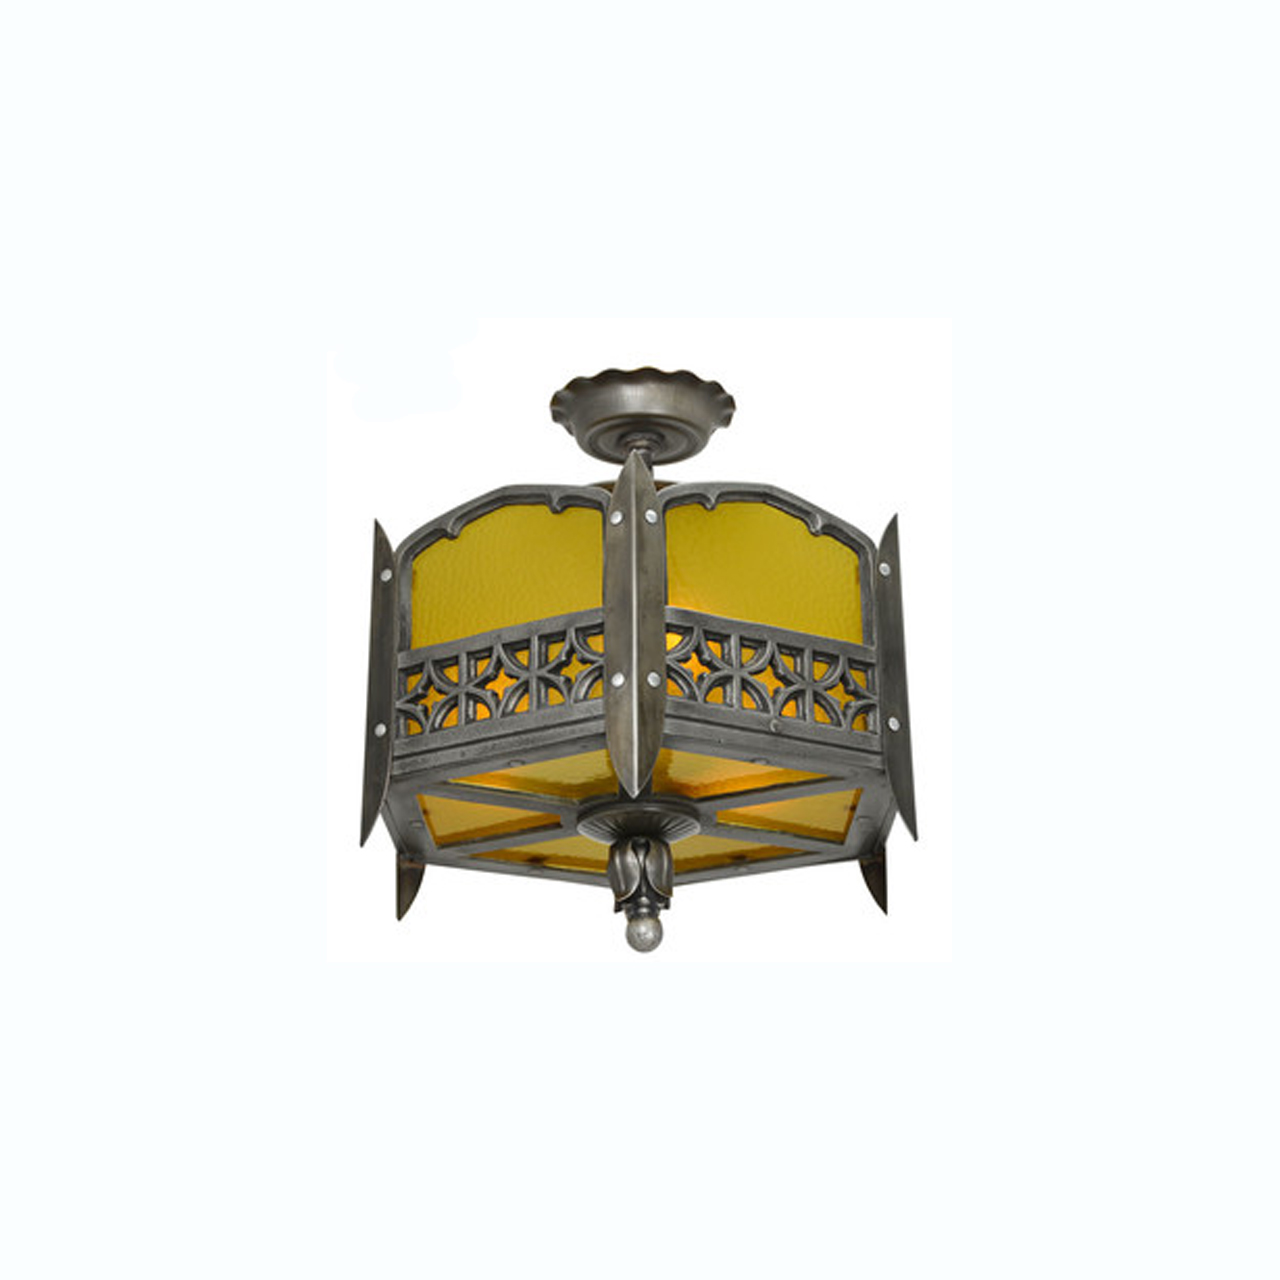 Gothic or arts and crafts style low or short ceiling chandelier gothic or arts and crafts style low or short ceiling chandelier light ant 321 for sale arubaitofo Gallery